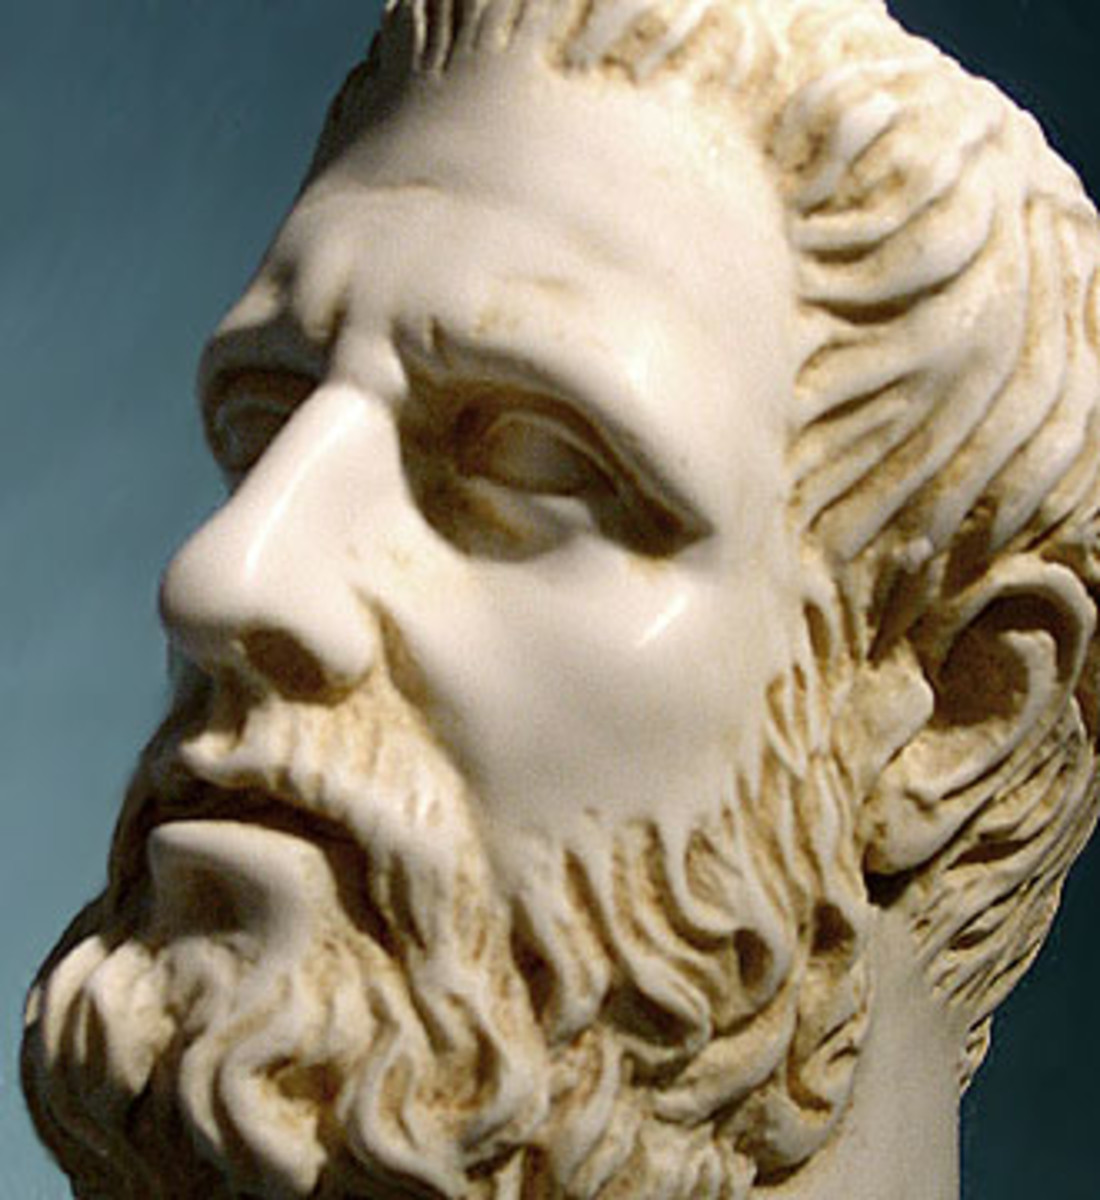 Yes! This is a real photo of Hippocrates.